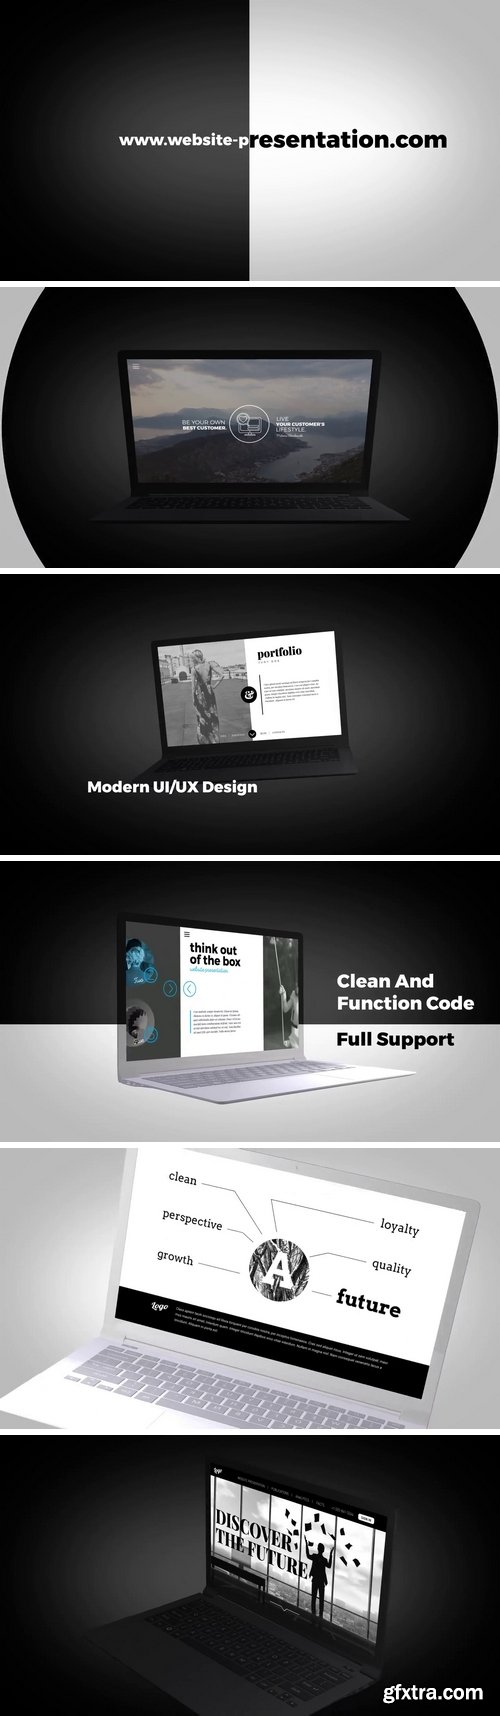 MA - Dynamic Website Presentation After Effects Templates 67077